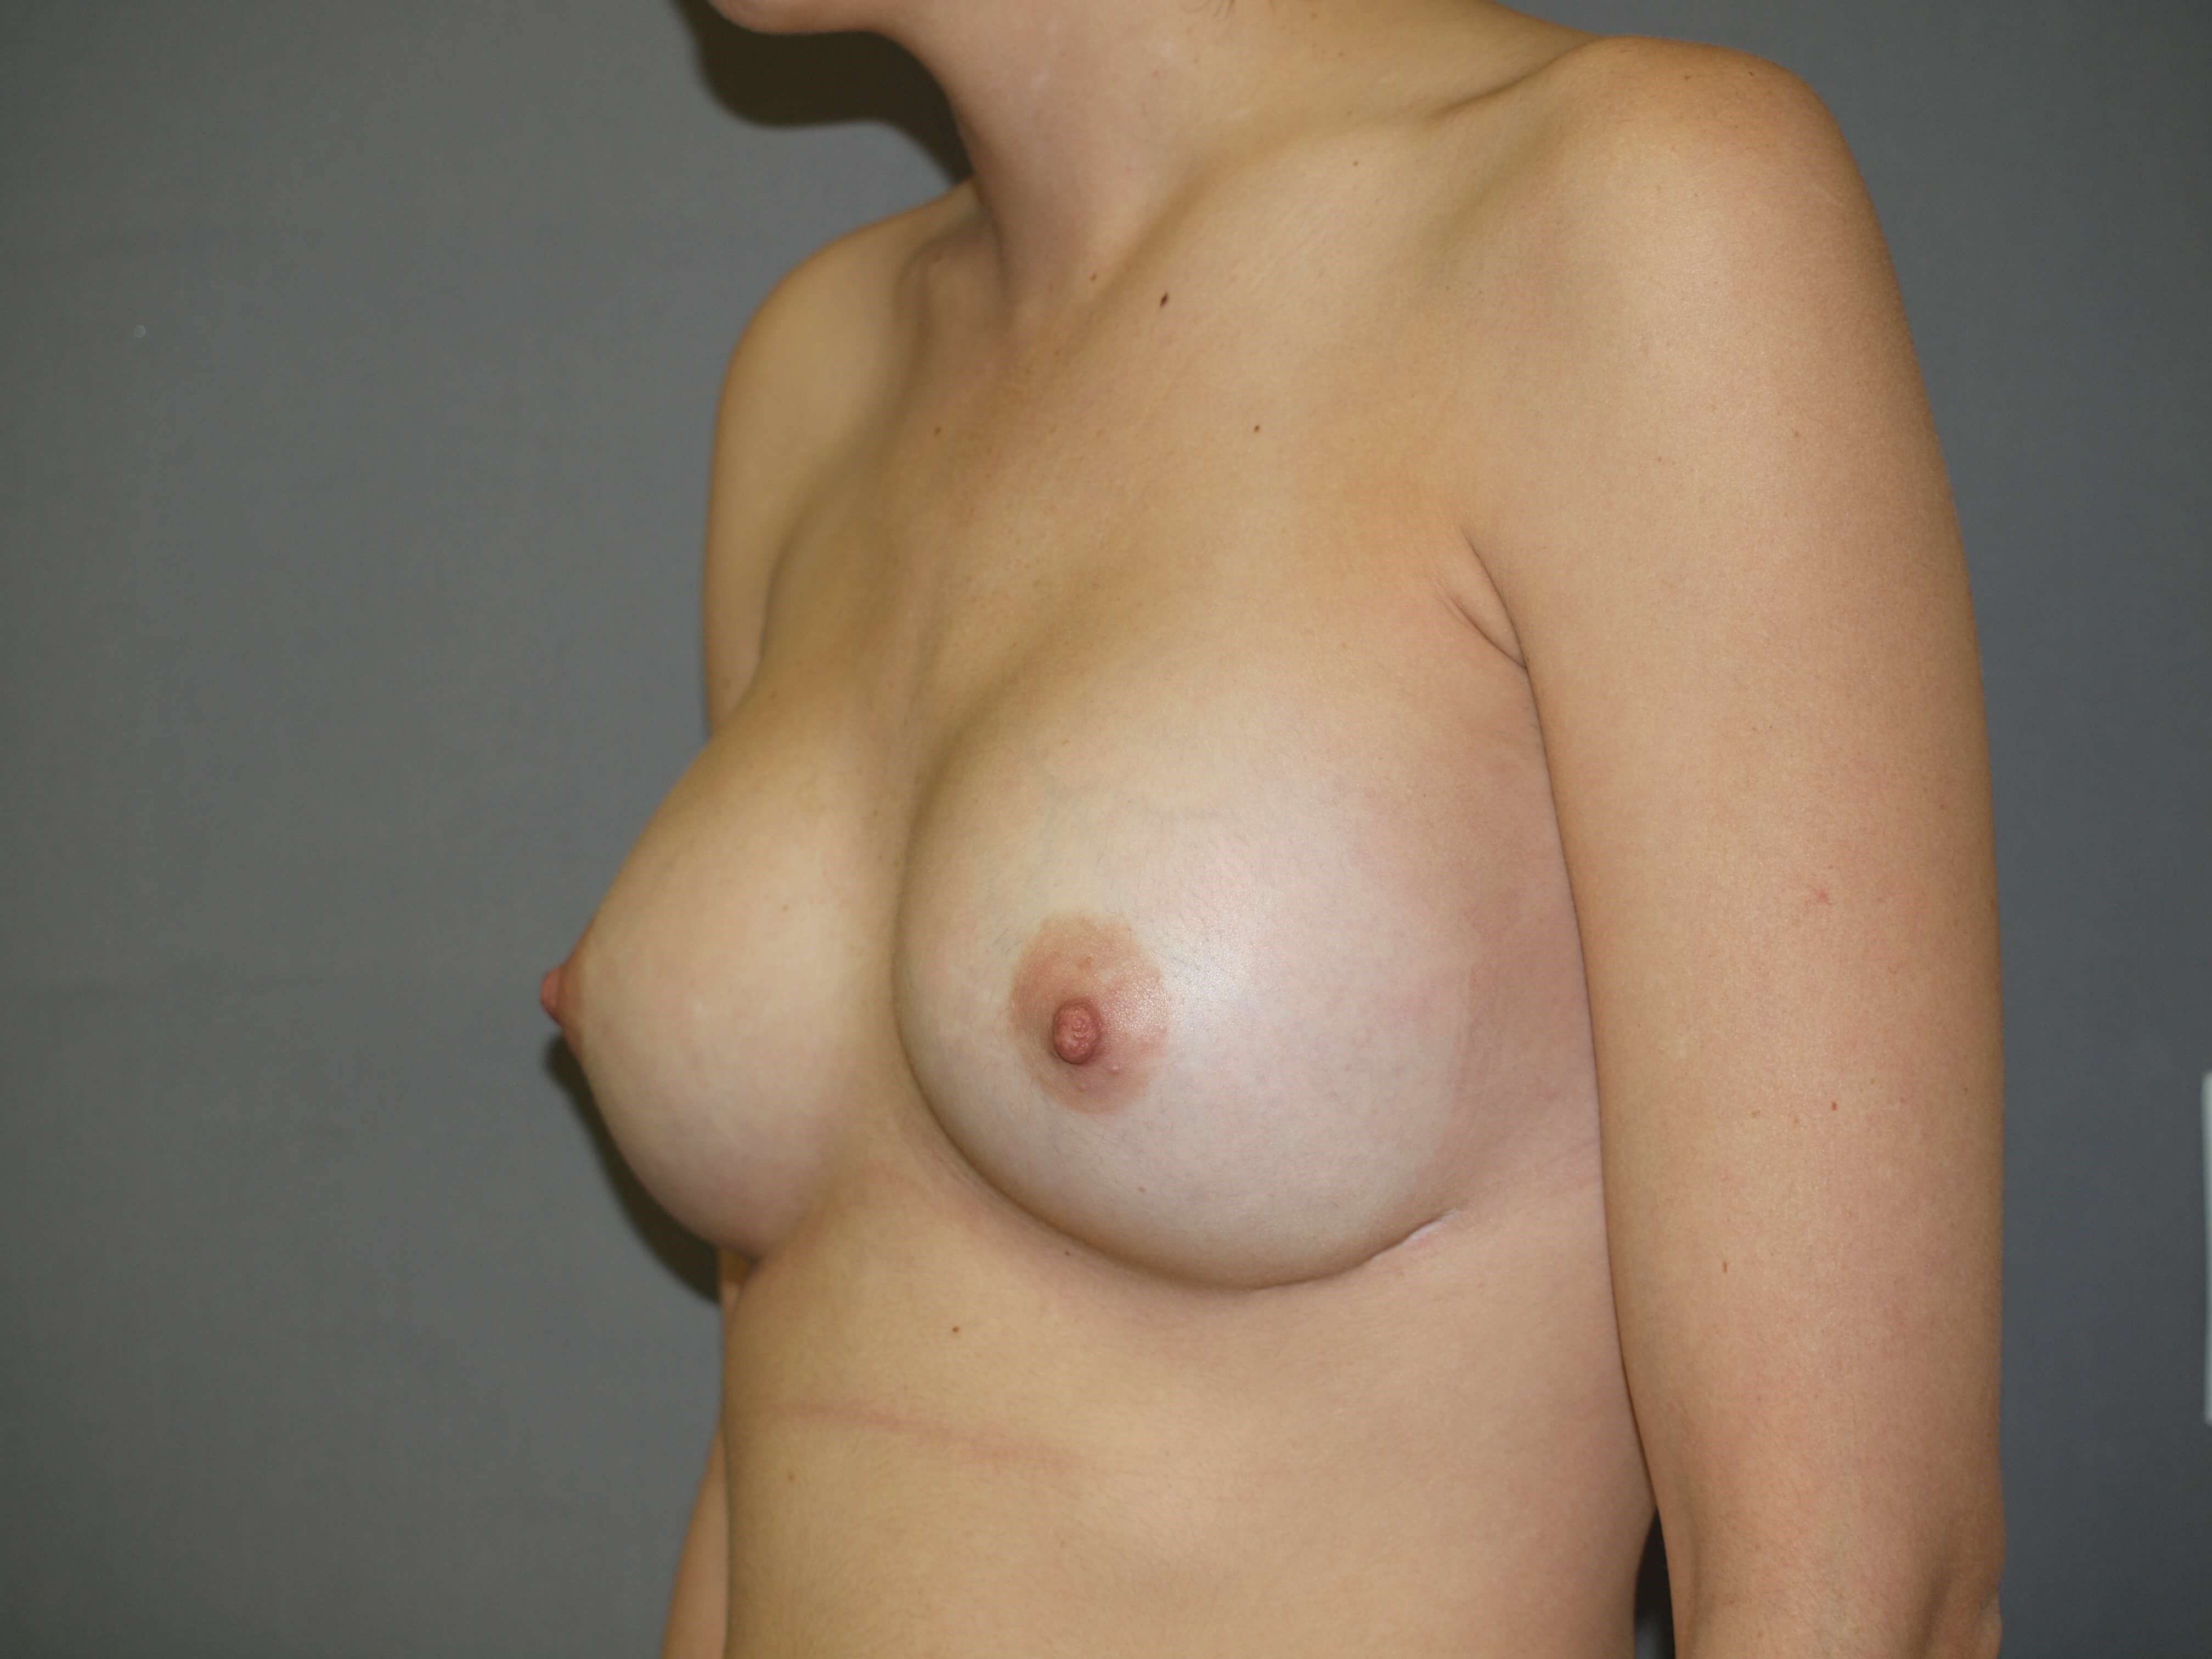 400 cc High Profile Implants After